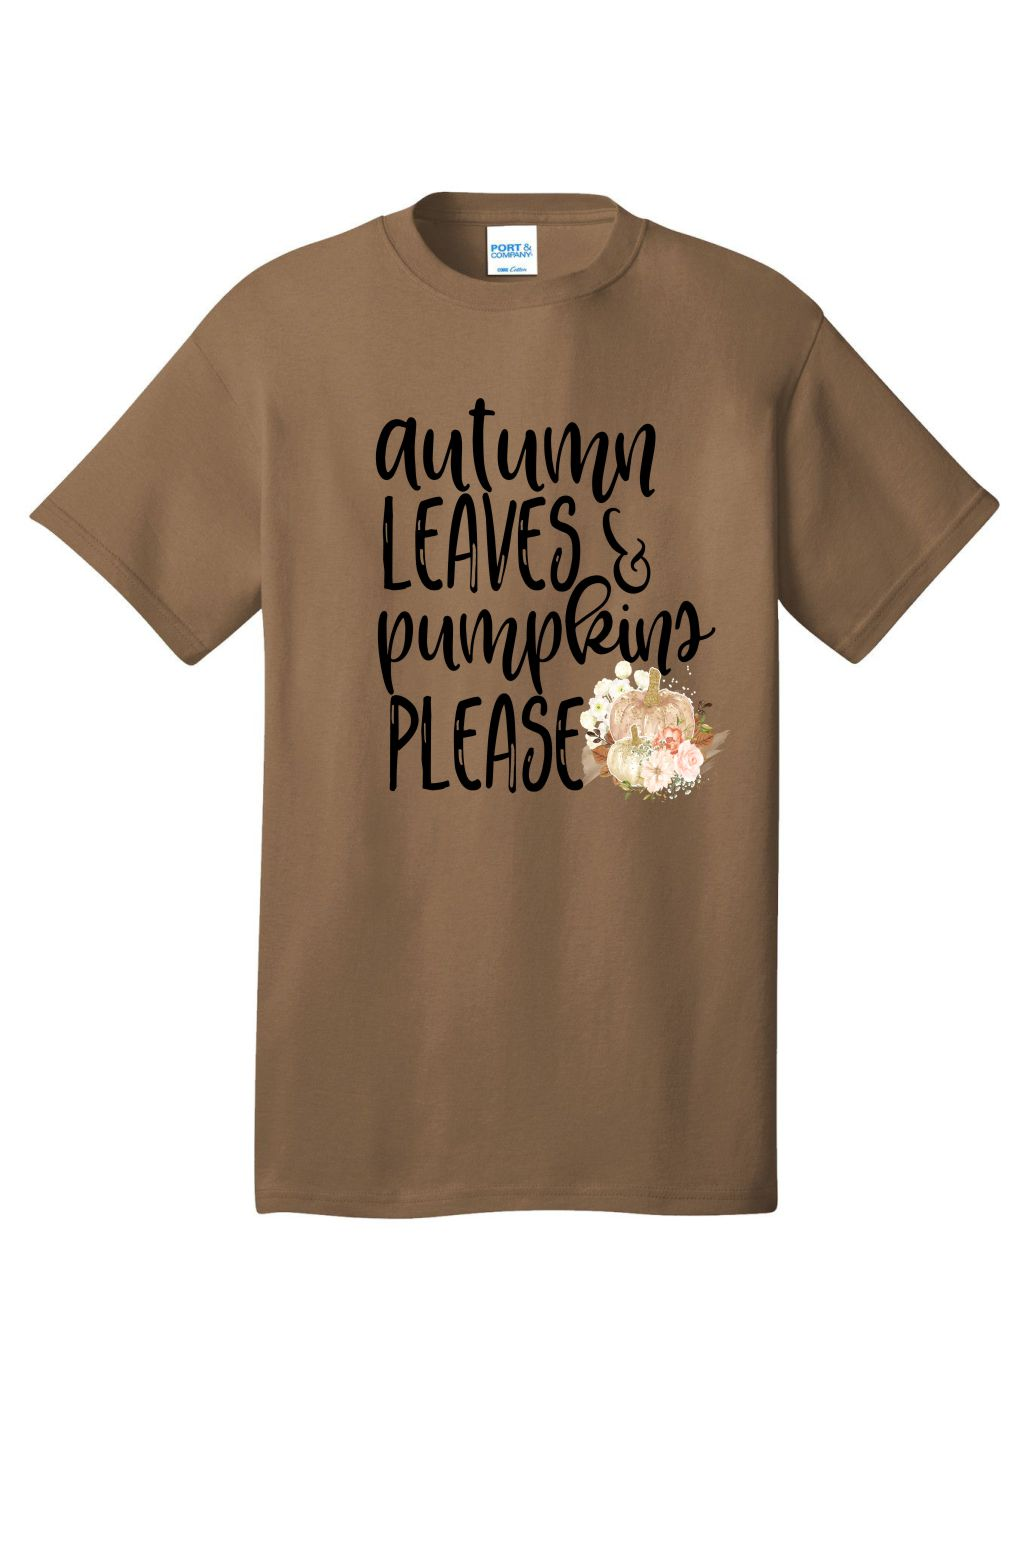 2021 October Shirt of the Month